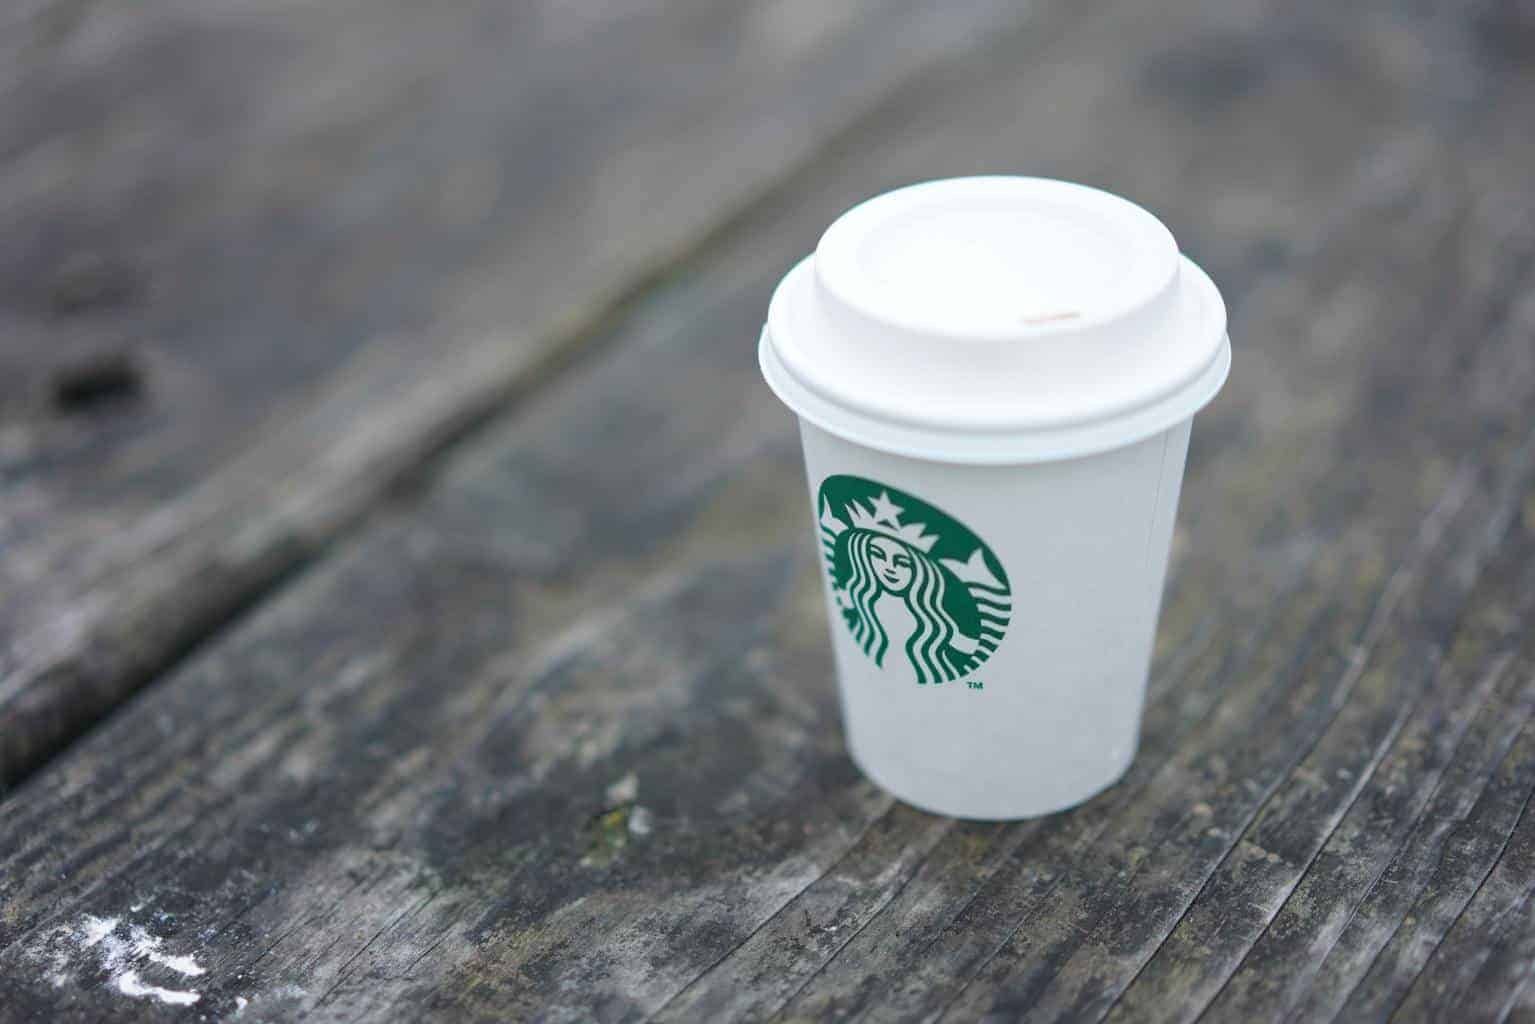 Short Starbucks cup on a wooden plank surface